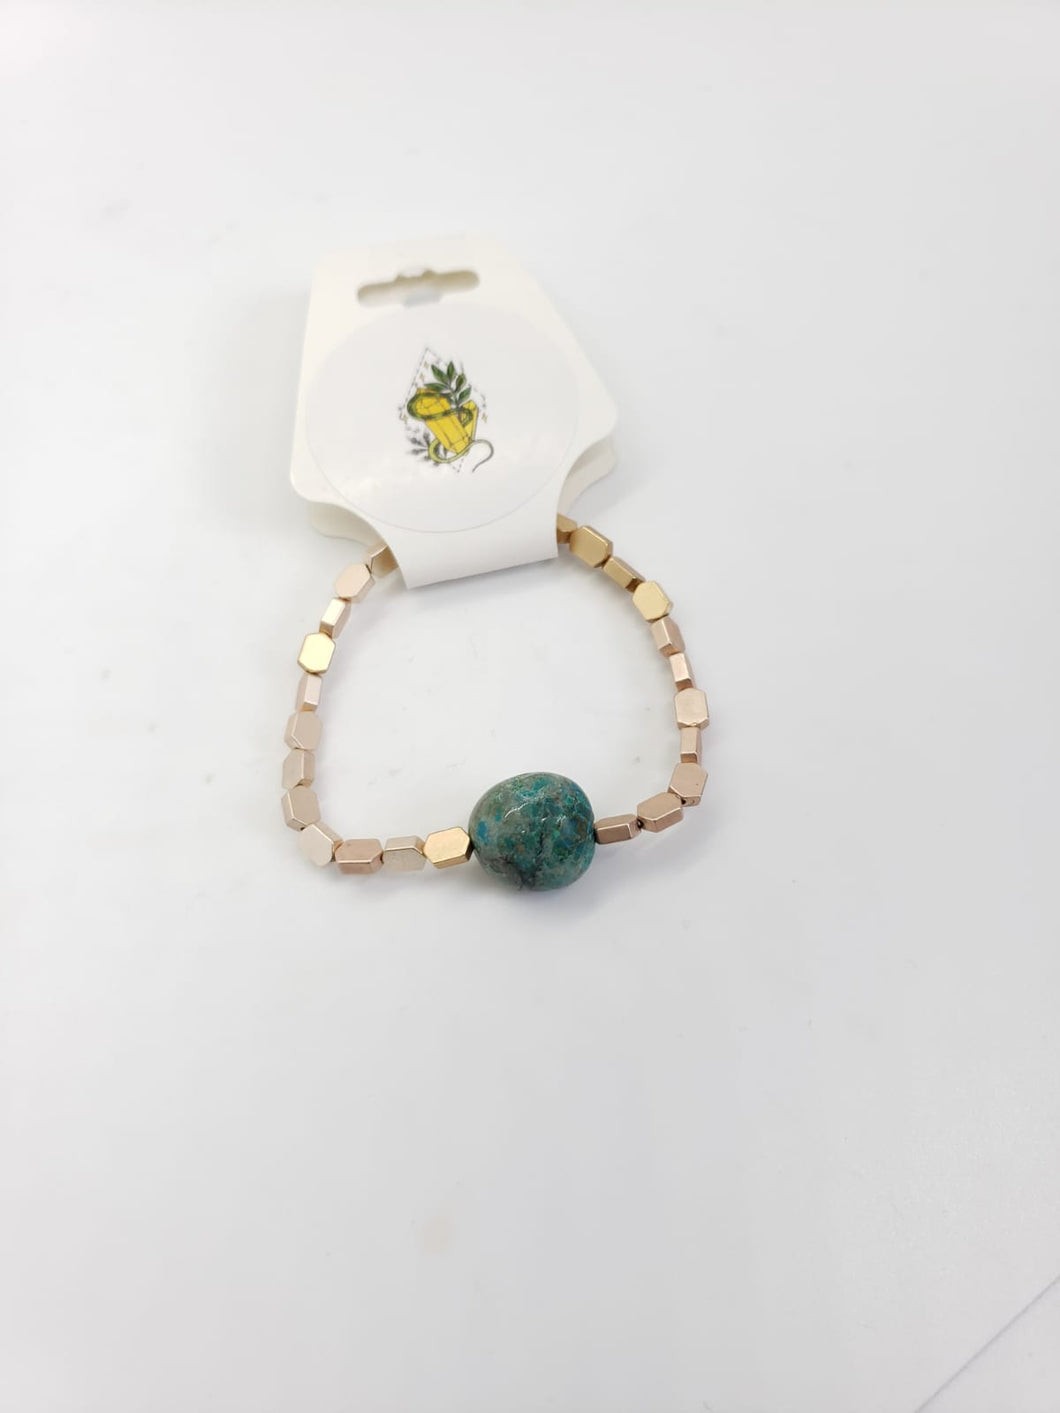 Chrysocolla and gold Bracelet - The Sacred Serpentine